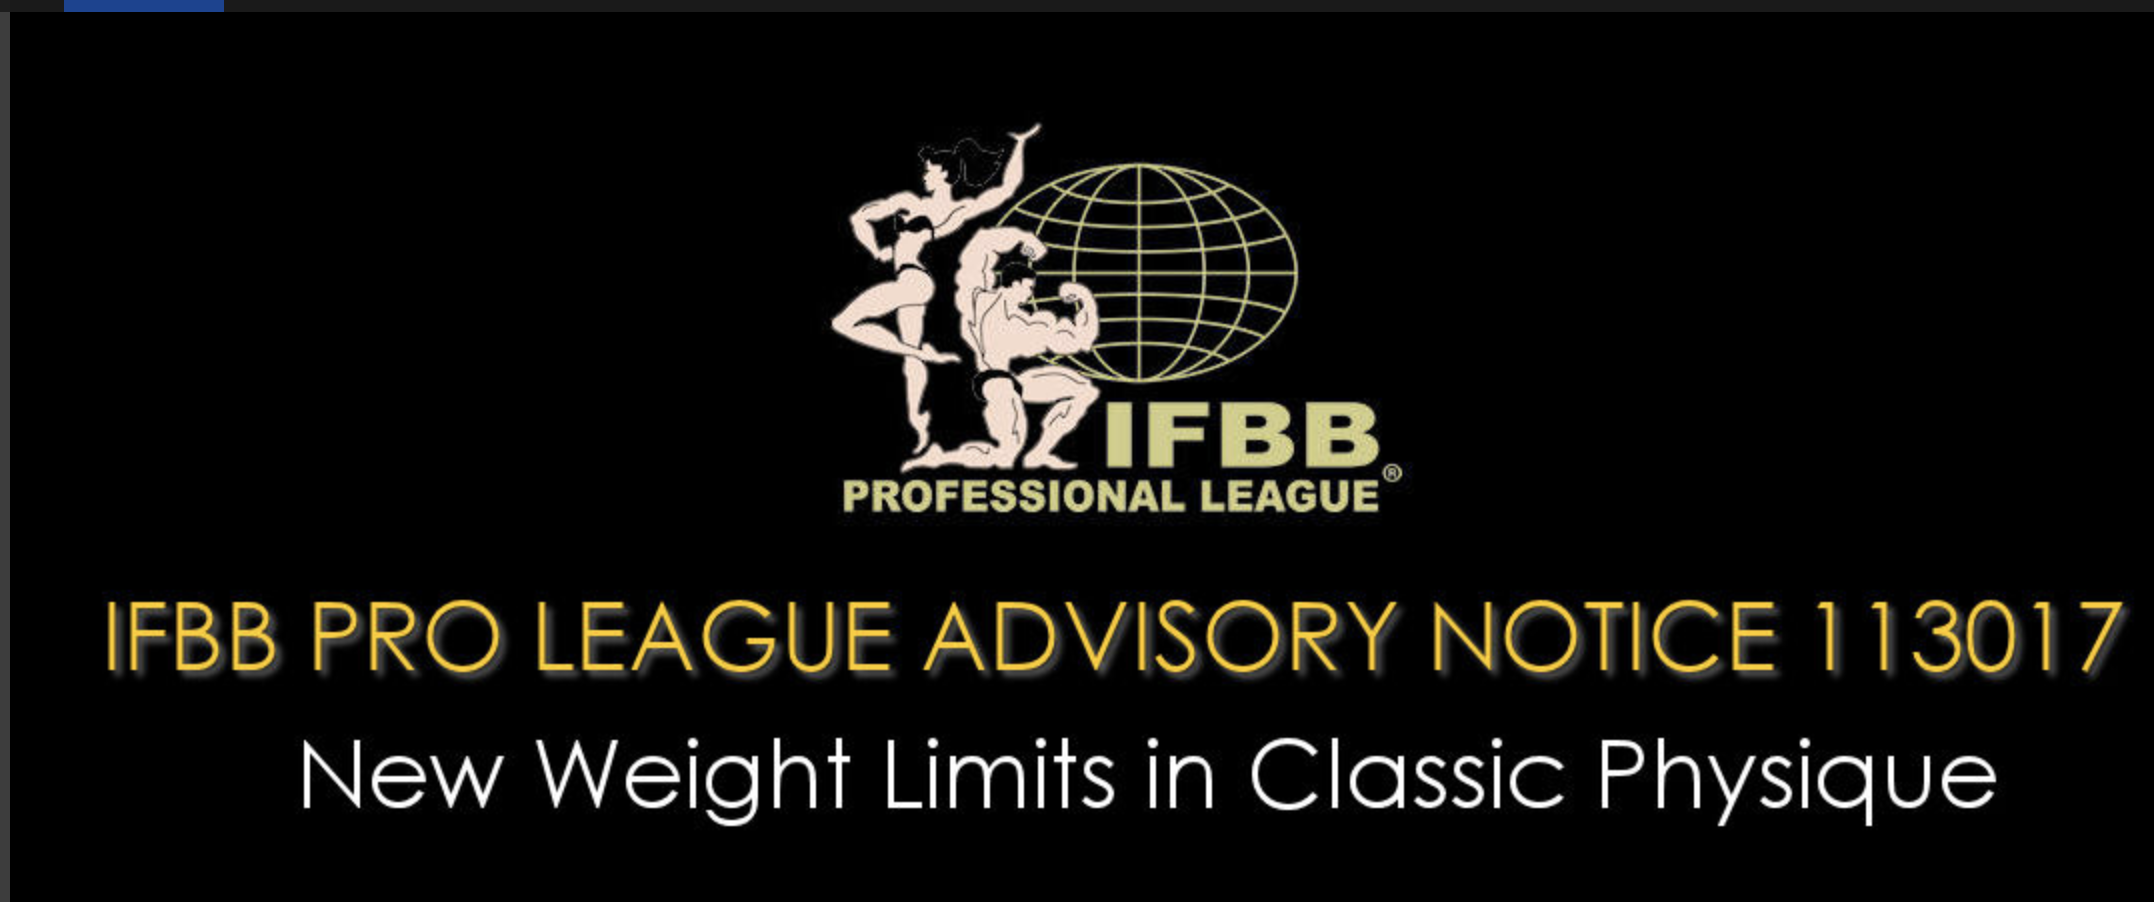 NPC NEWS ONLINE UPDATE: New IFBB Classic Physique Weight Limits